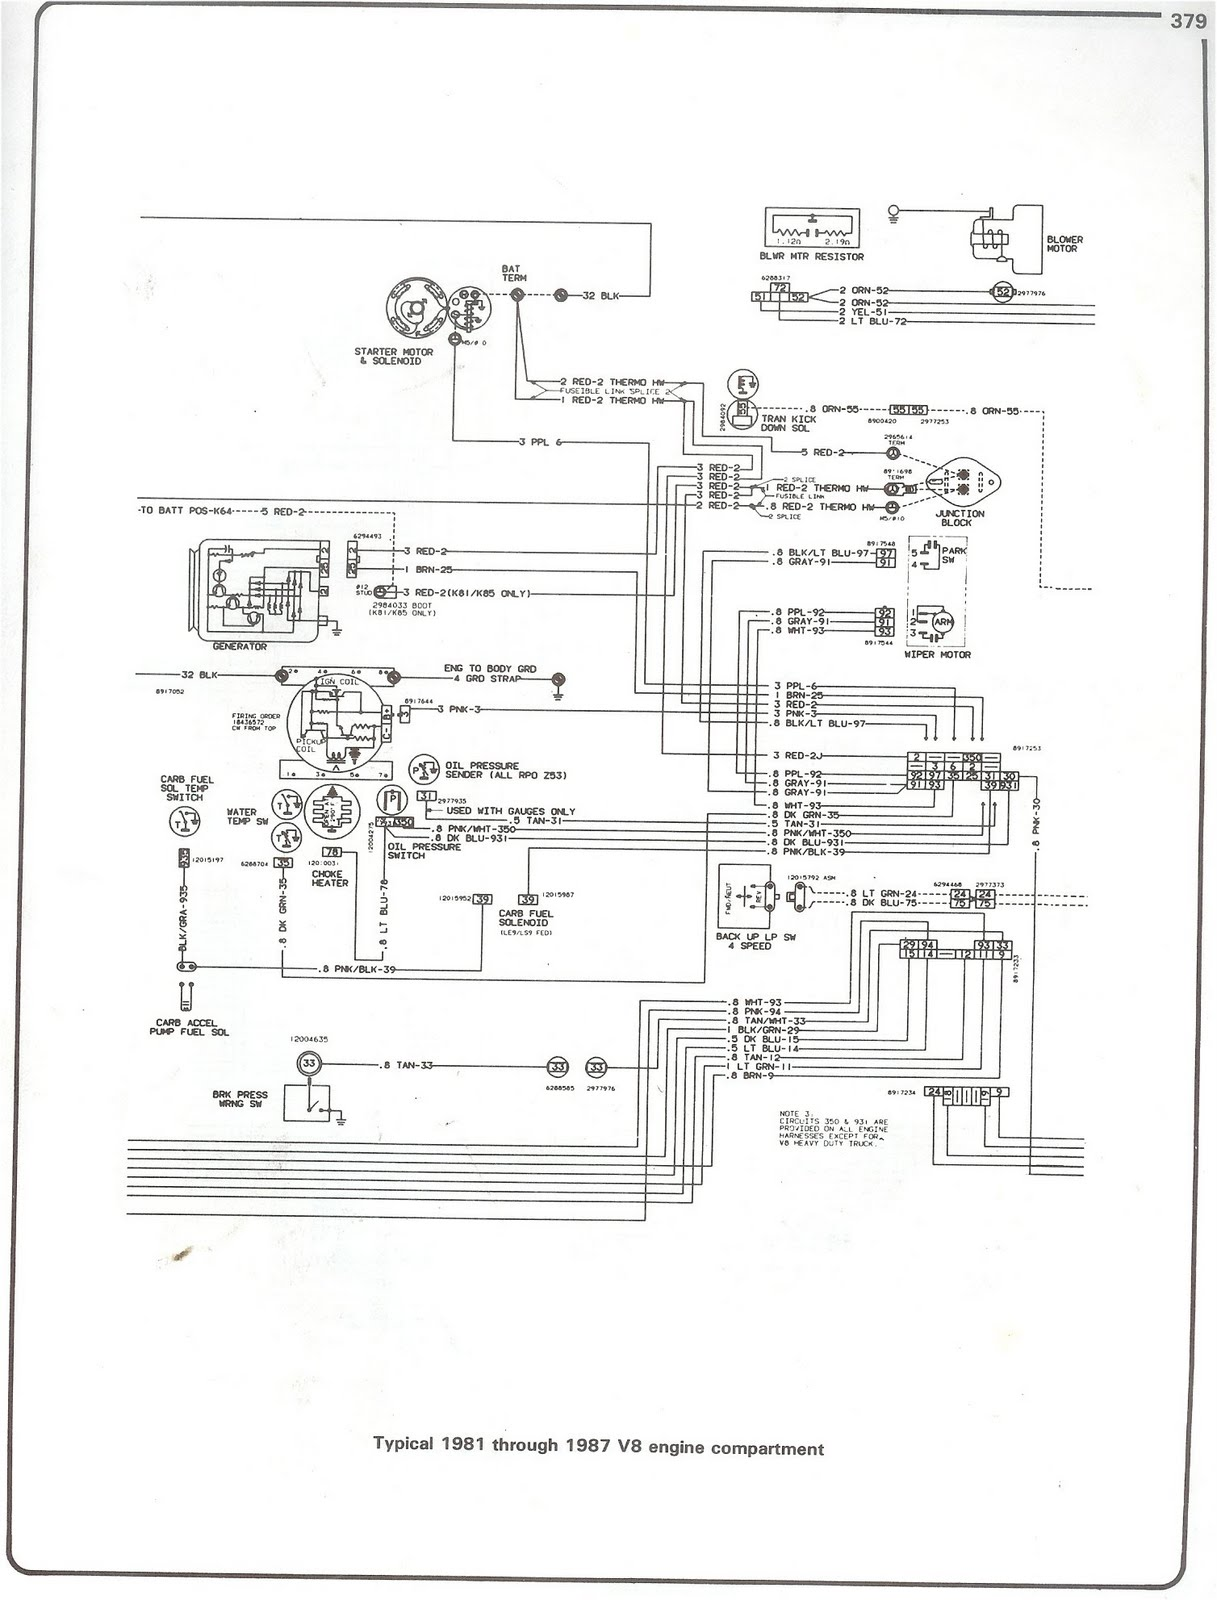 Bulk Head Pinout Diagram 87 R10 And 88  Suburbans - The 1947